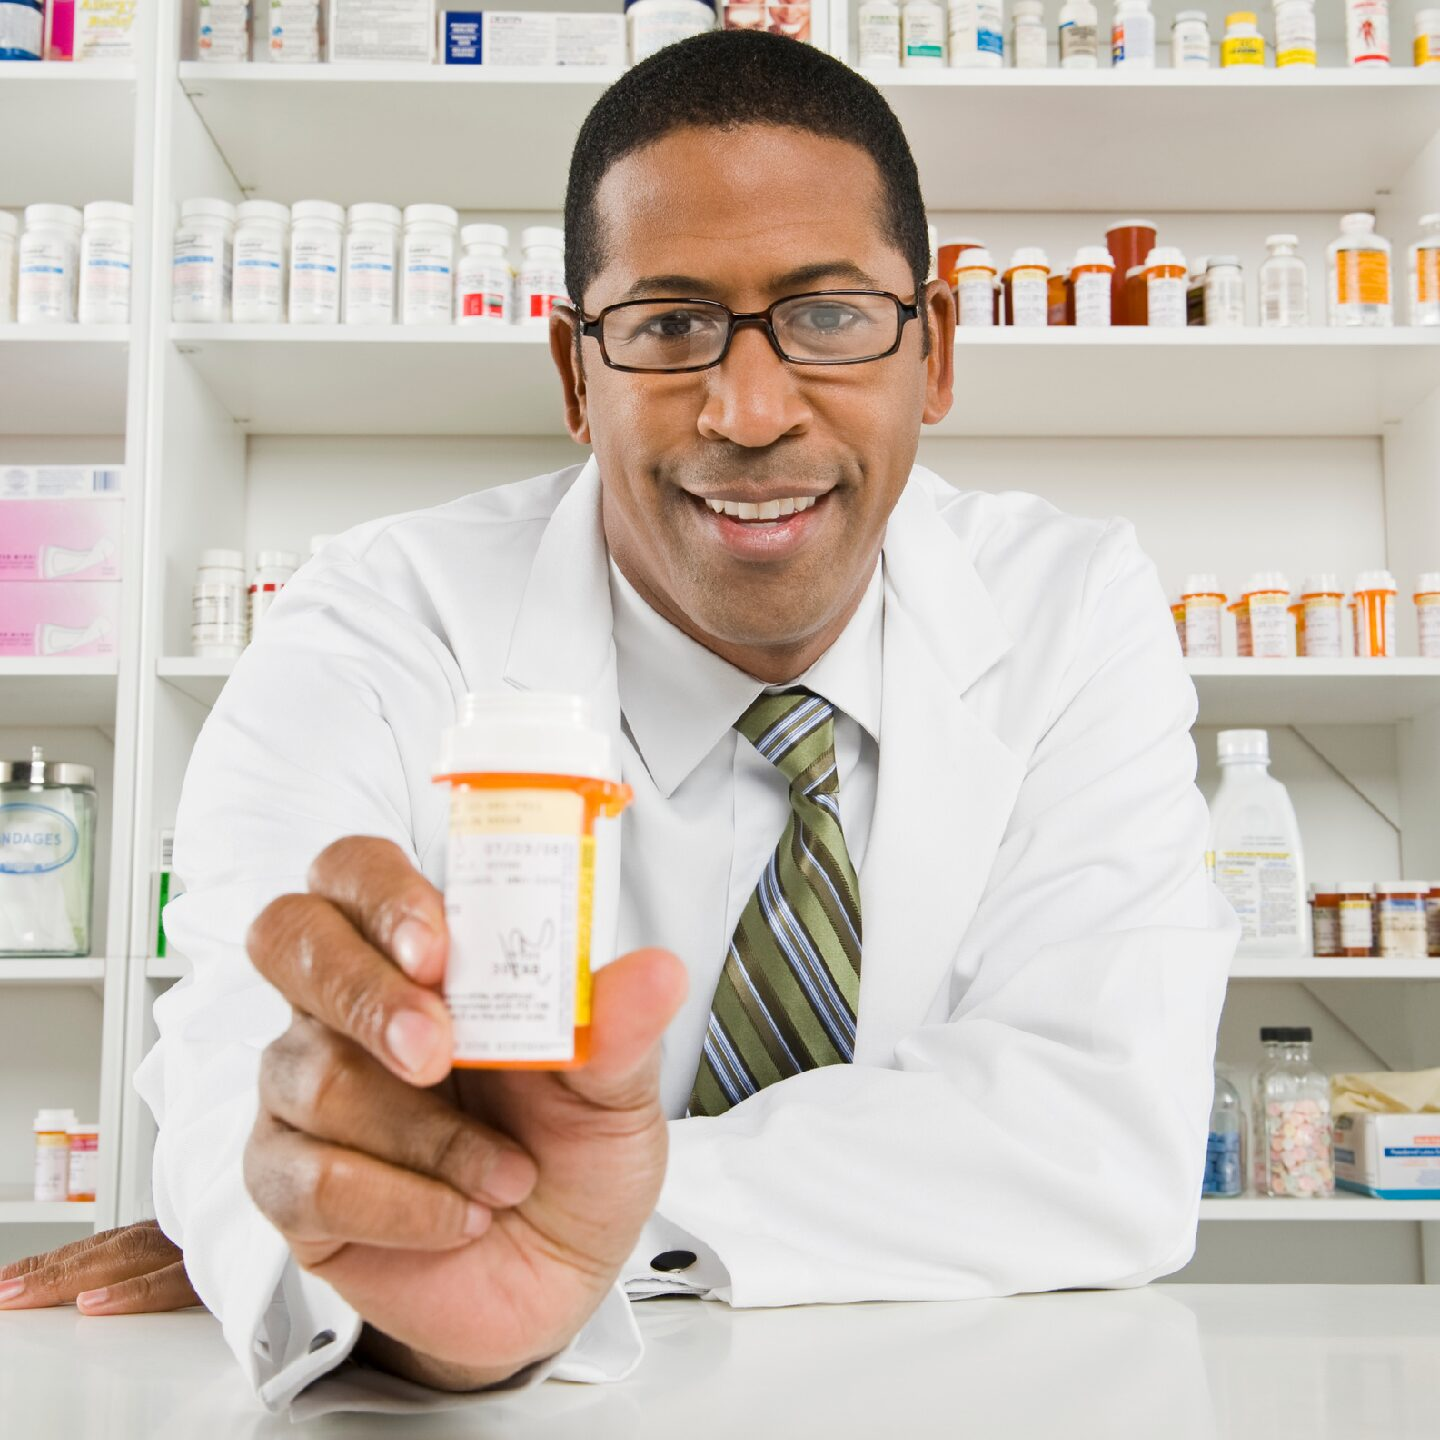 COSTCO PRESCRIPTION Medications – What You Need to Know to Save Money!